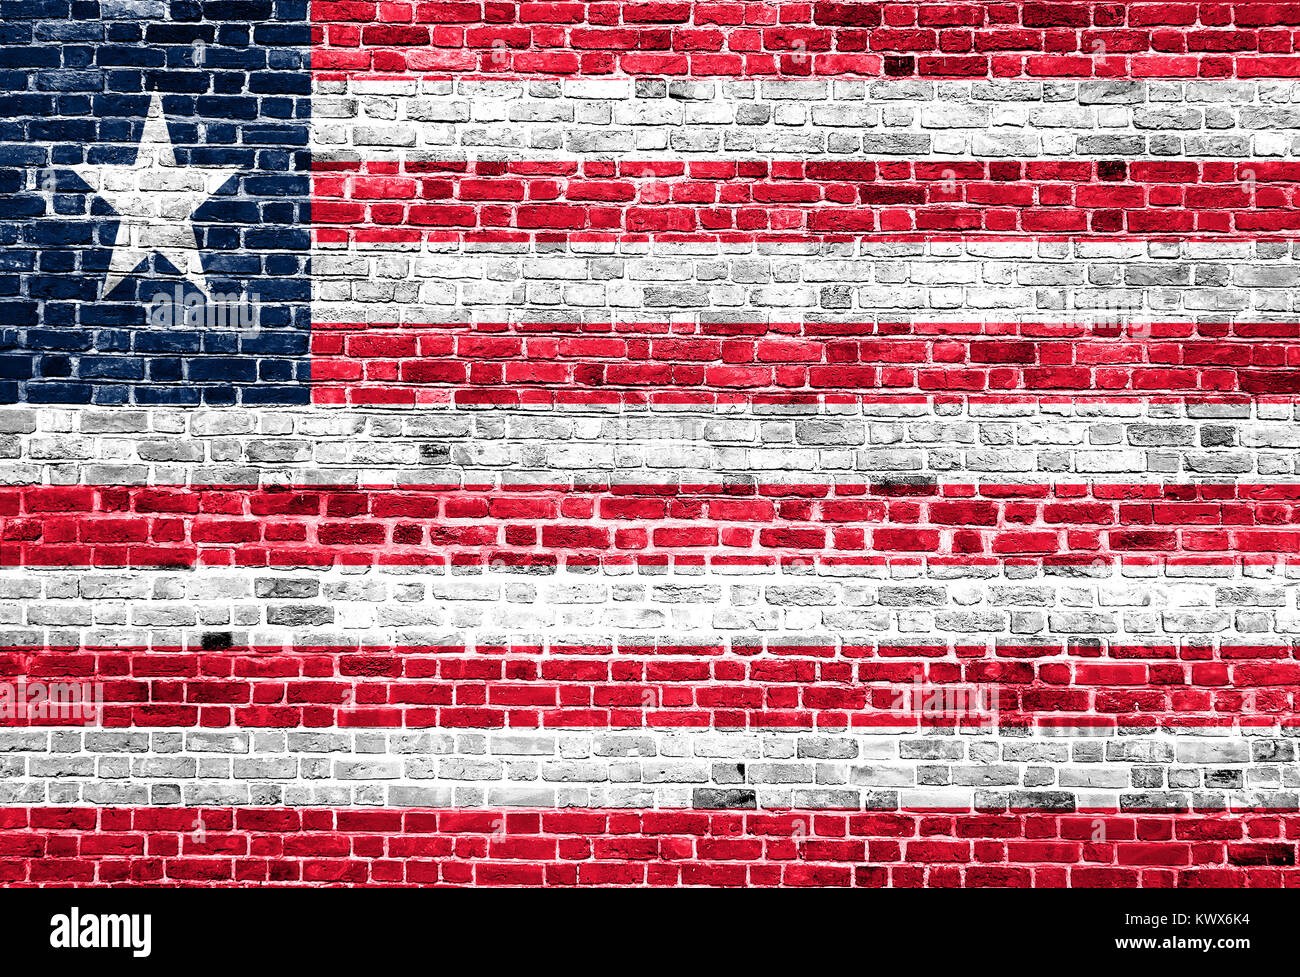 Flag of Liberia painted on brick wall, background texture - Stock Image